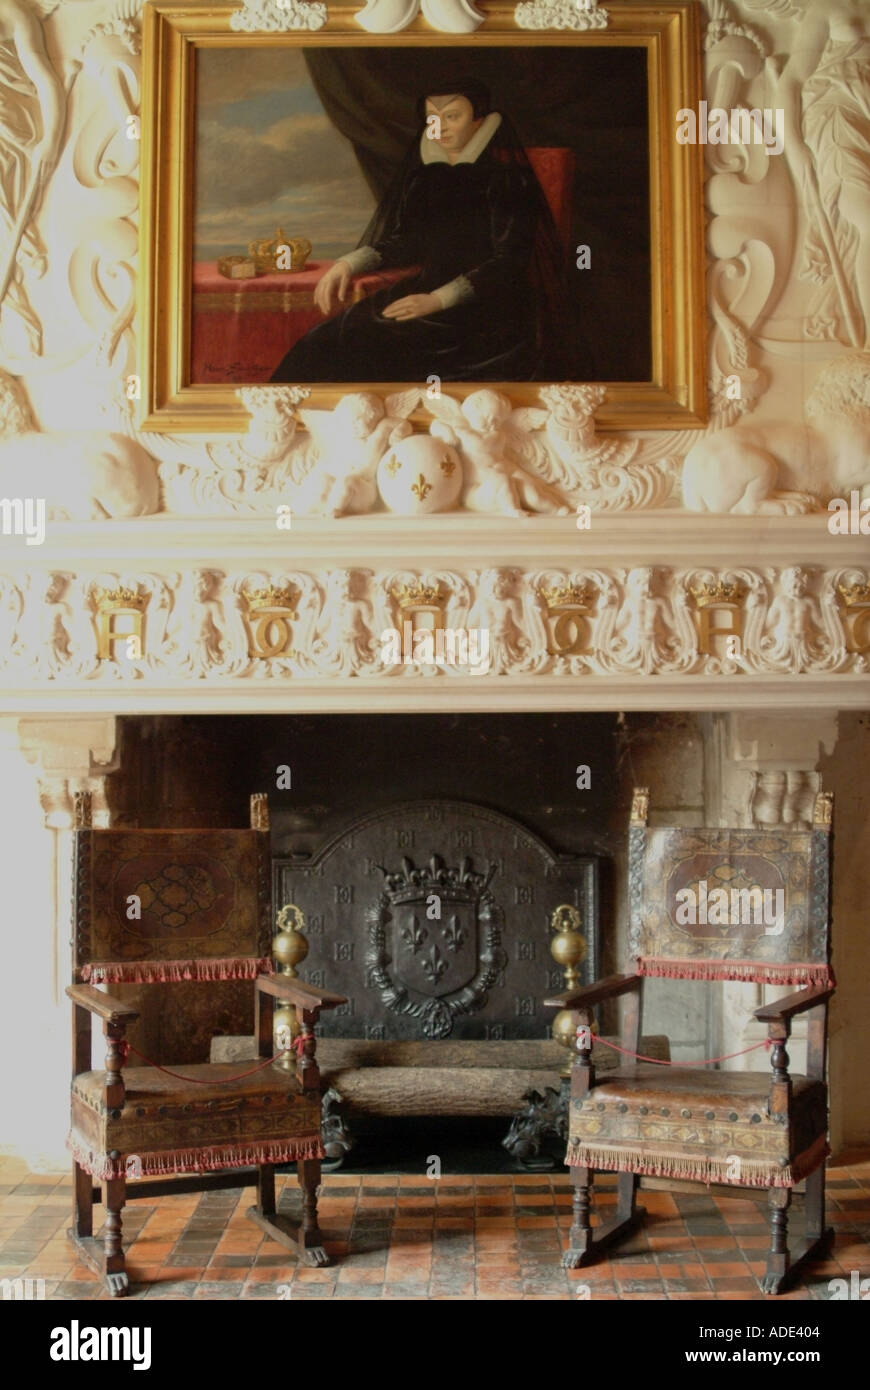 france chateau chenonceau interior Stock Photo, Royalty Free Image ...